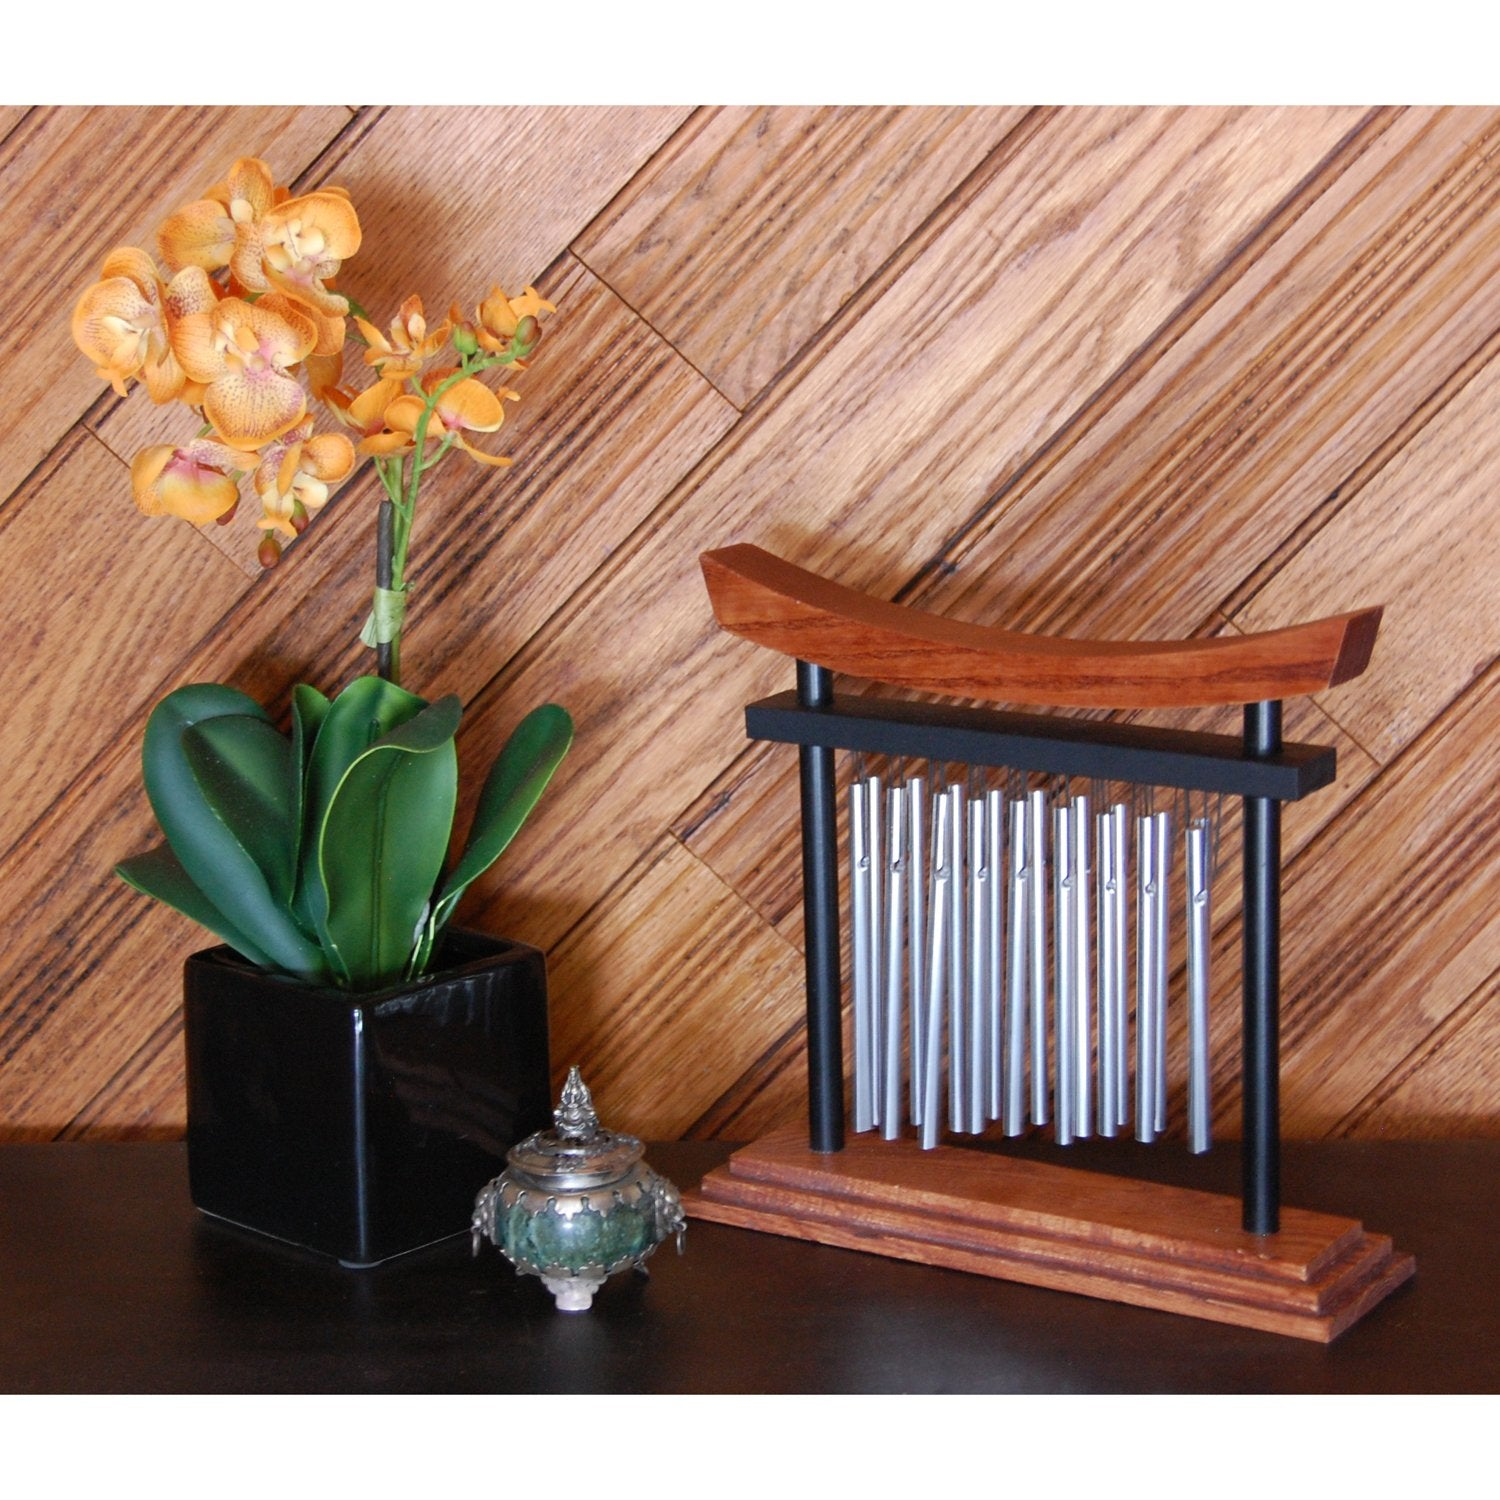 Tranquility Table Chime - Chi lifestyle image